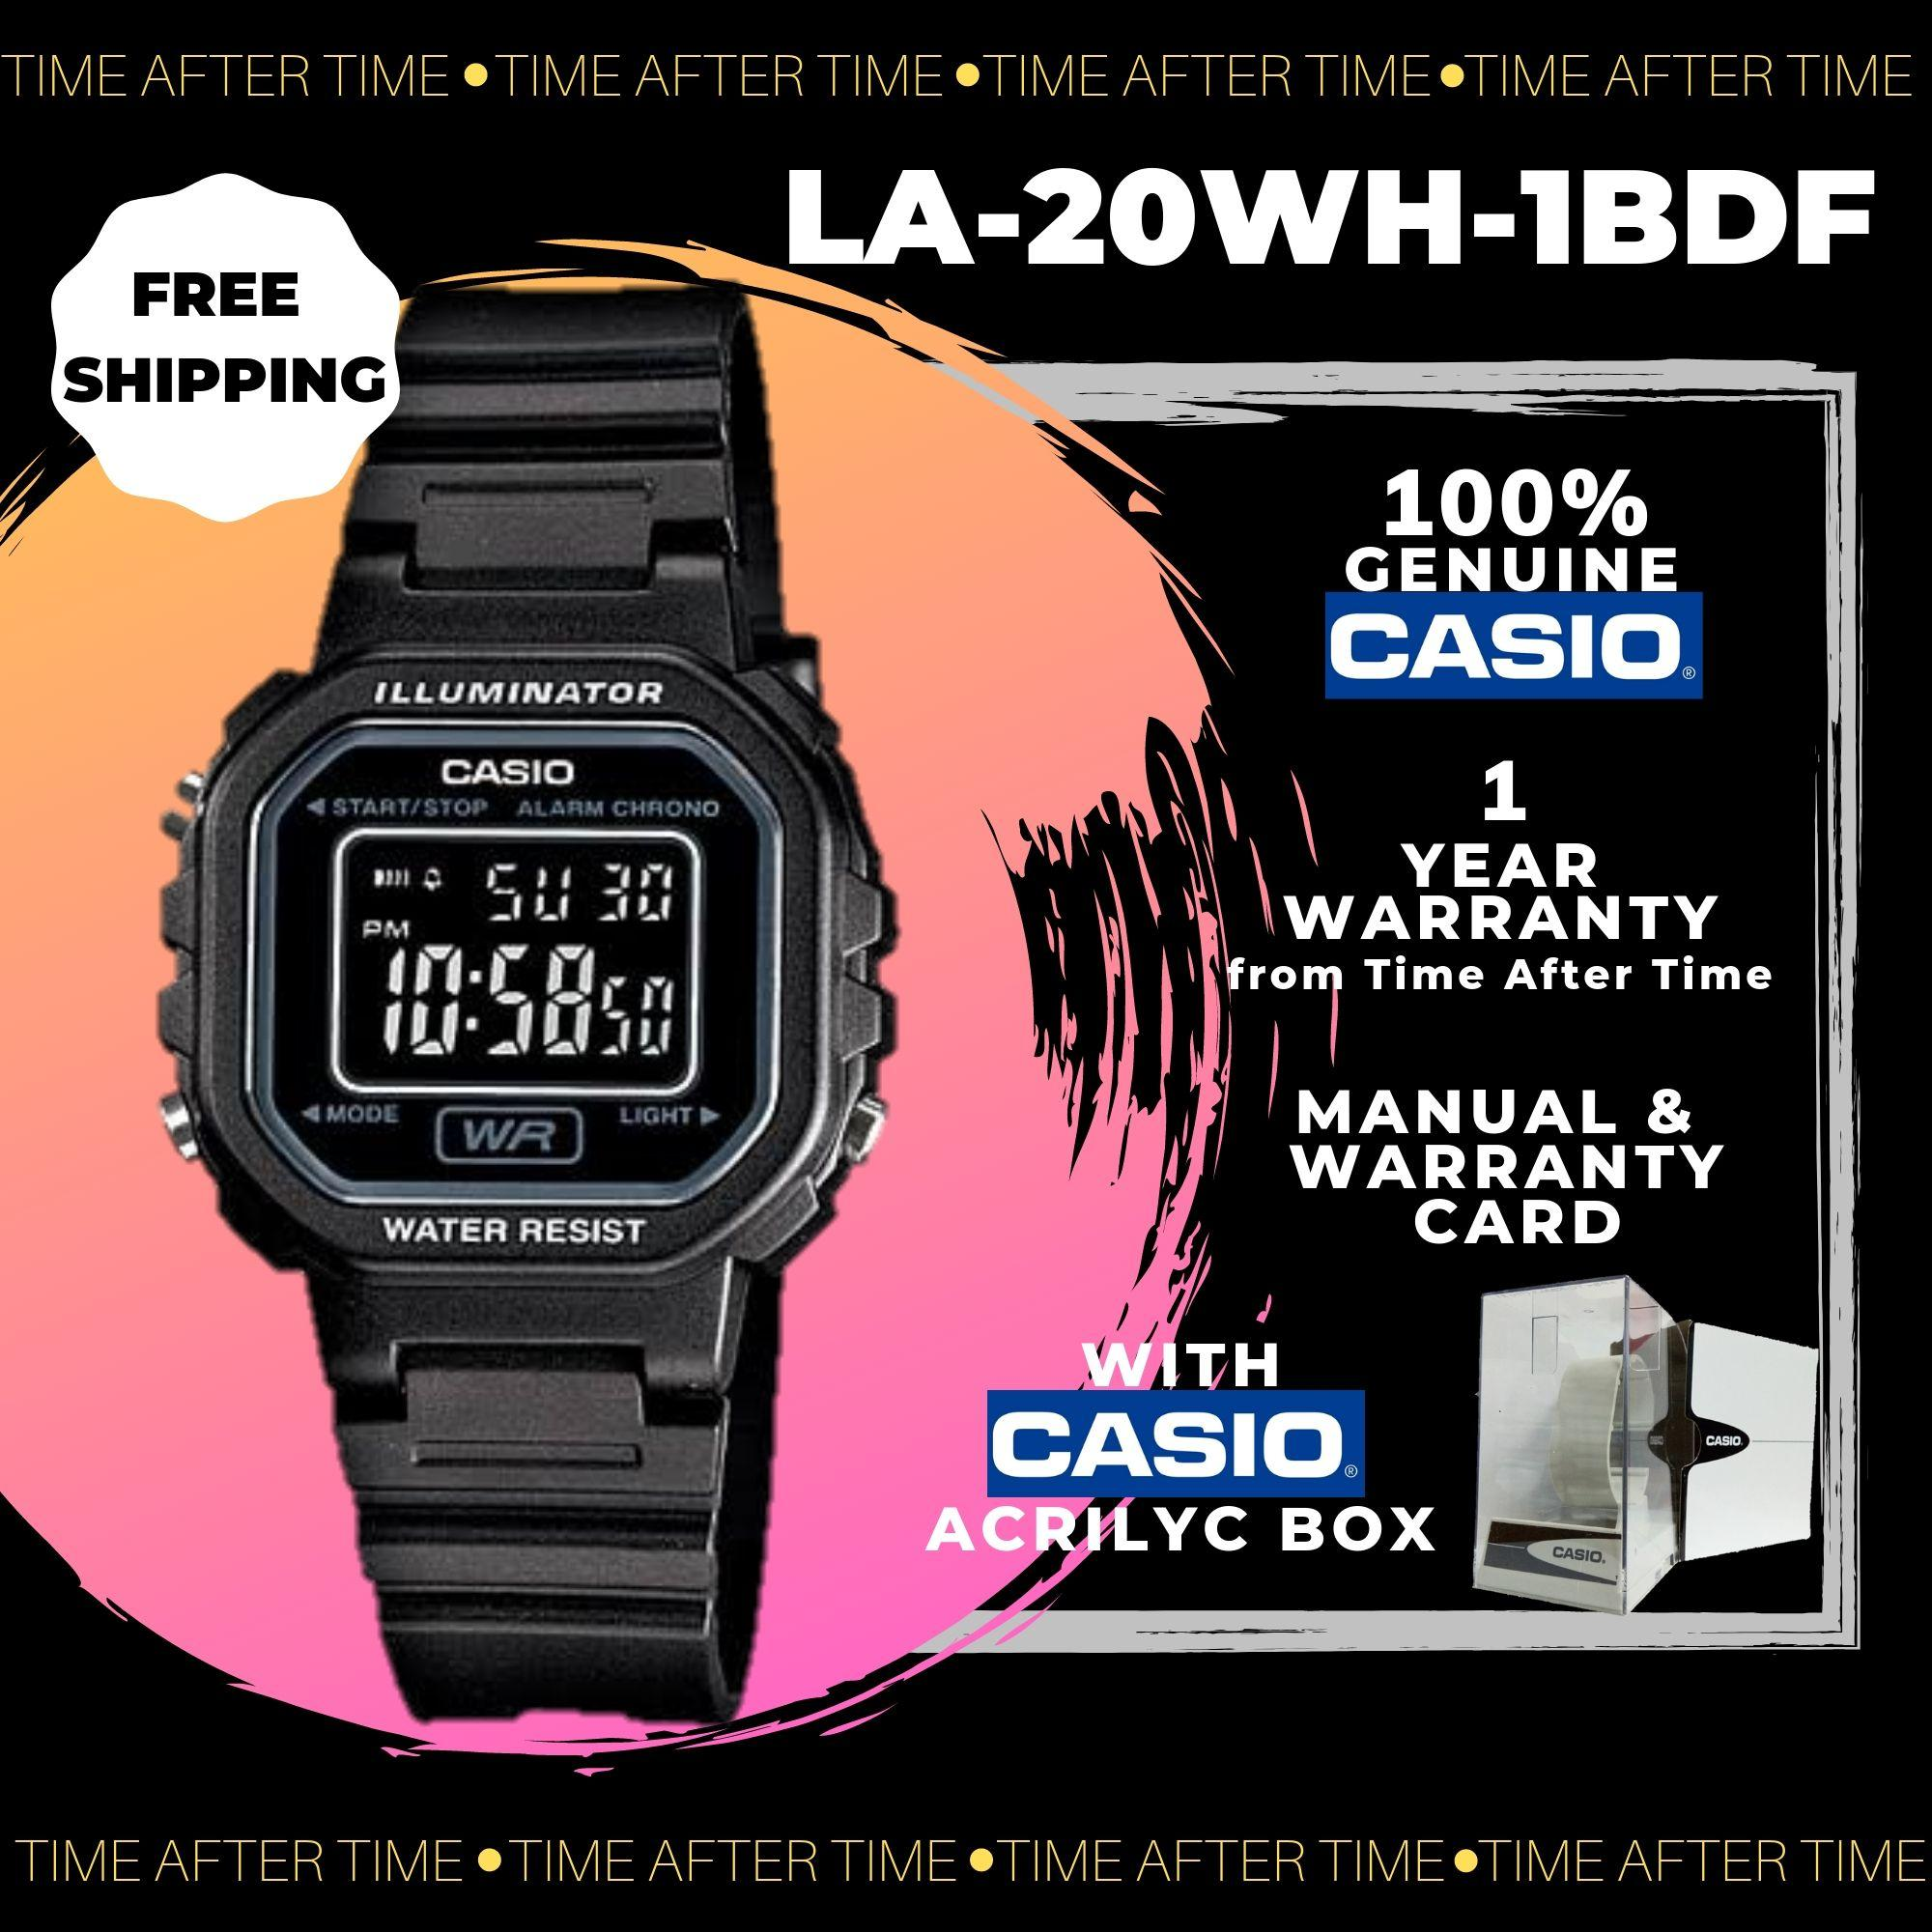 Casio Philippines: Casio price list - Casio Watches for Men